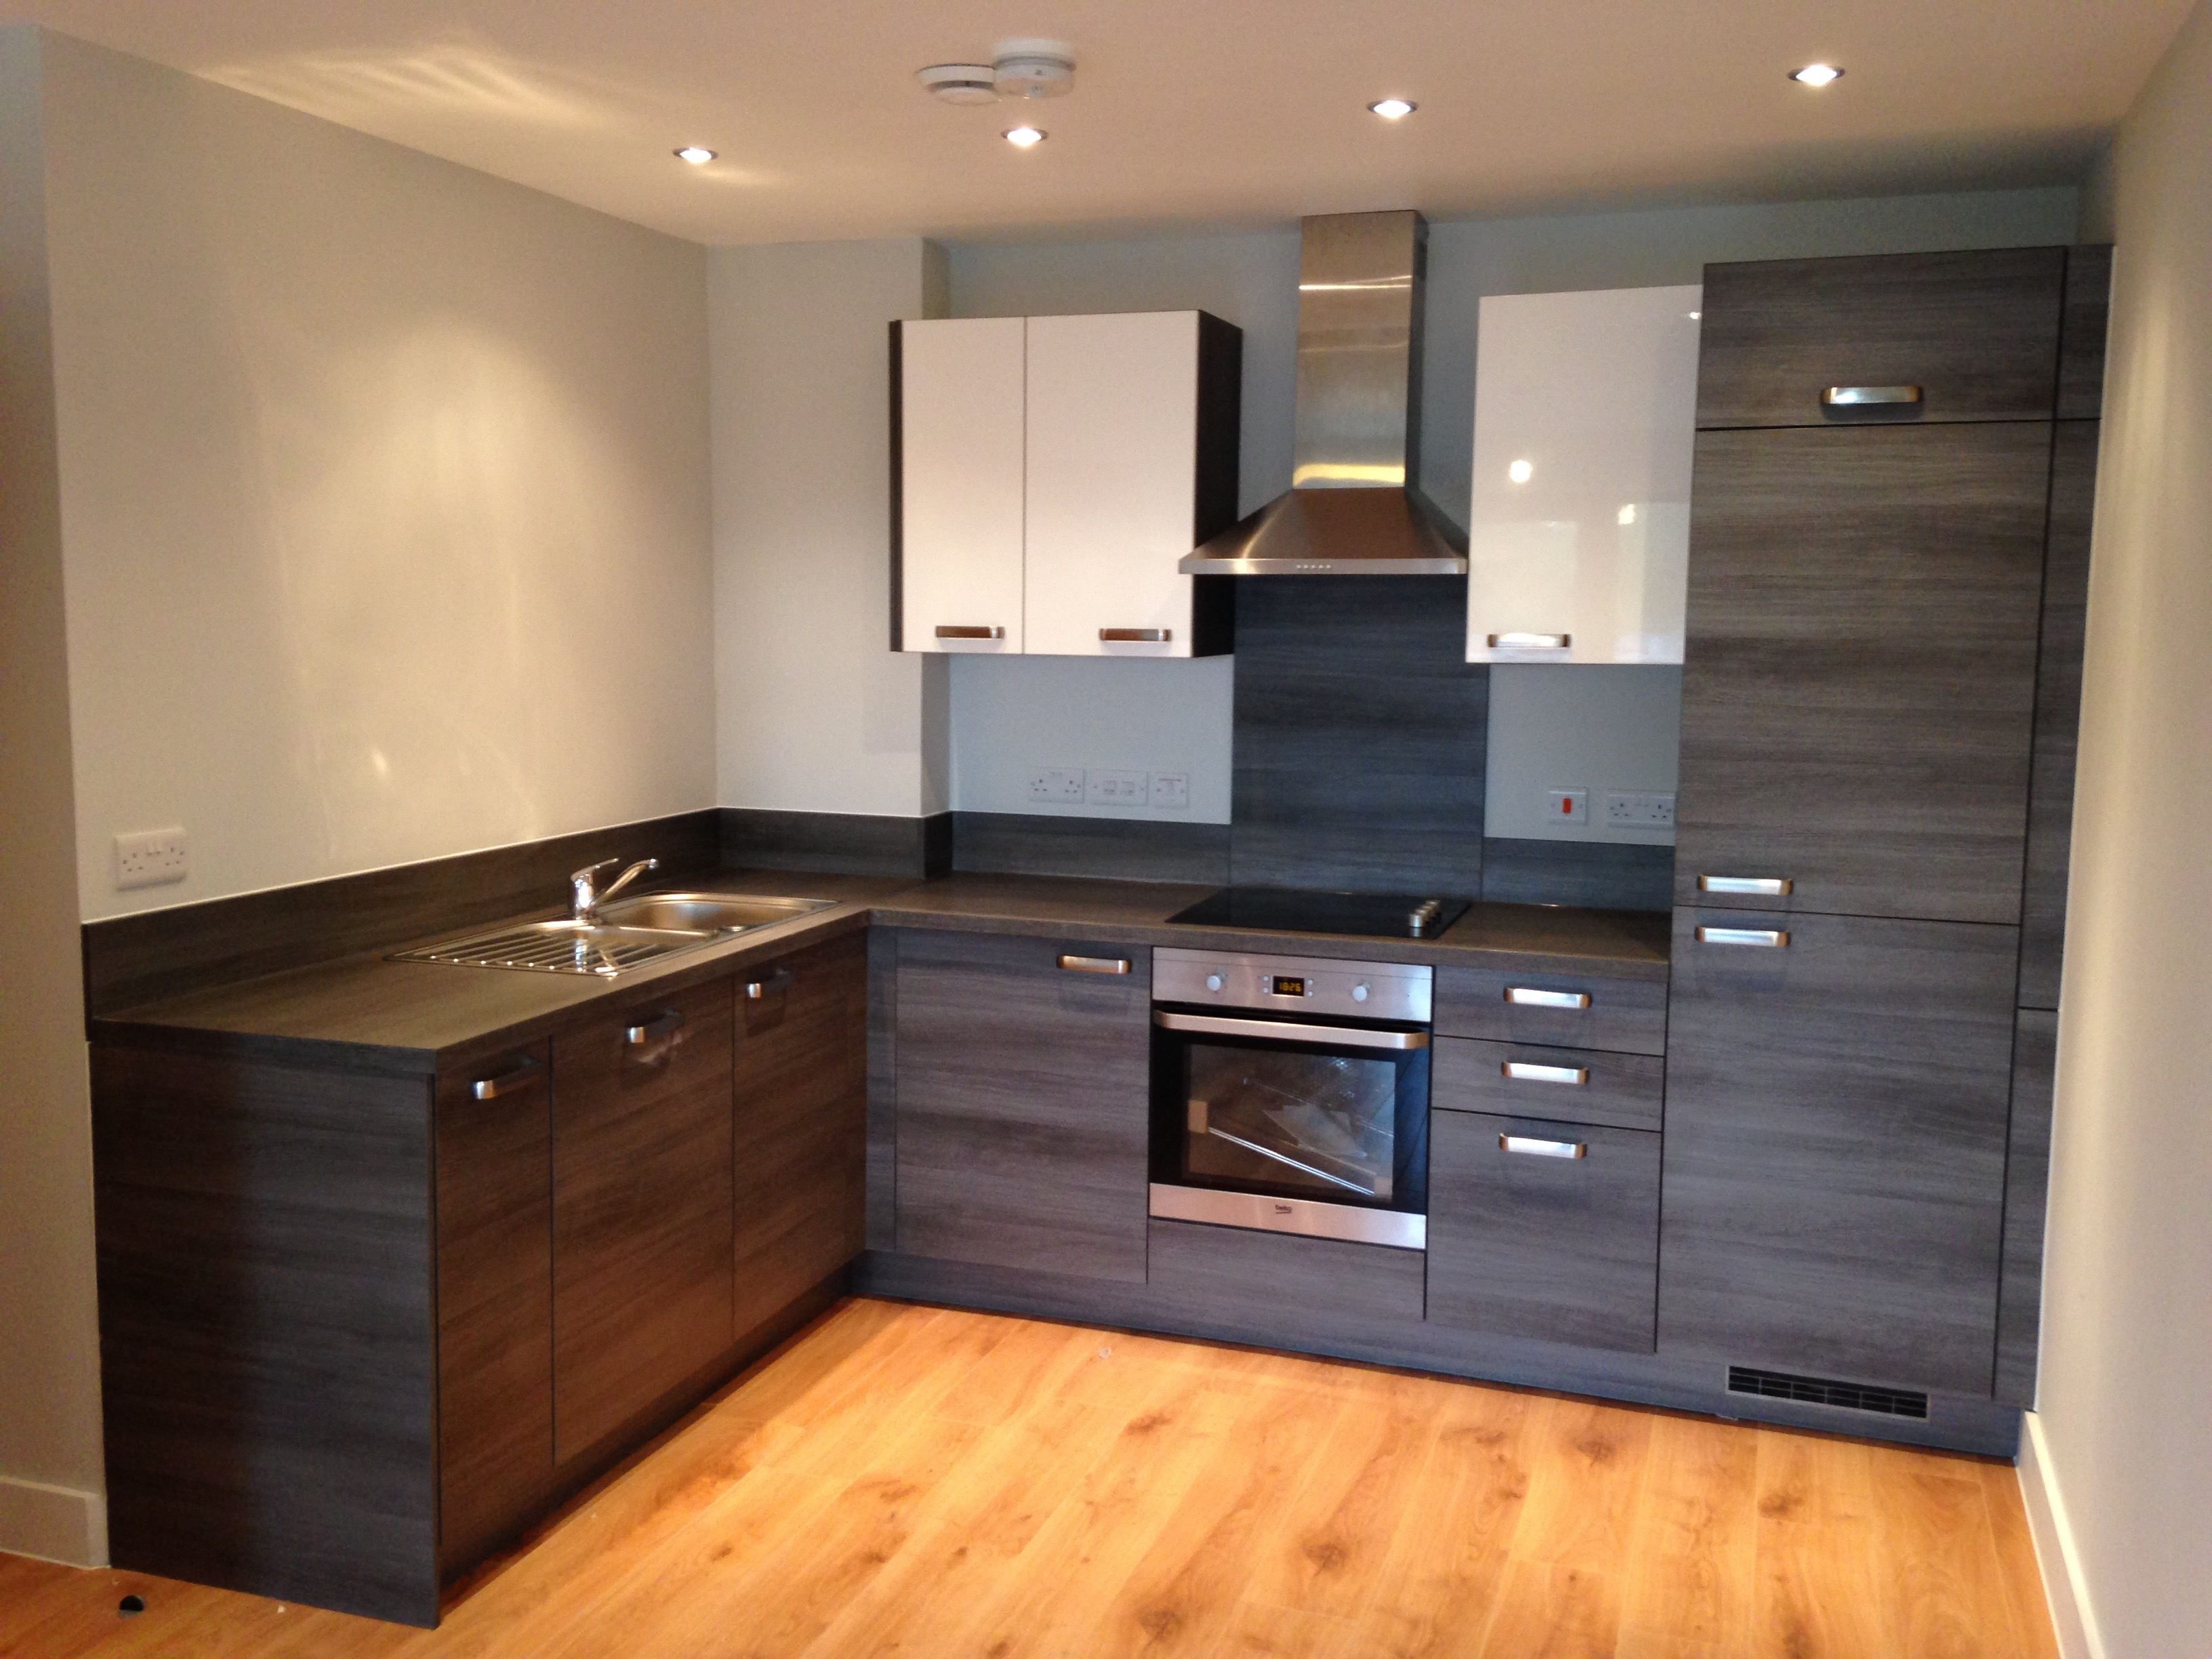 Kitchen fitting contractors